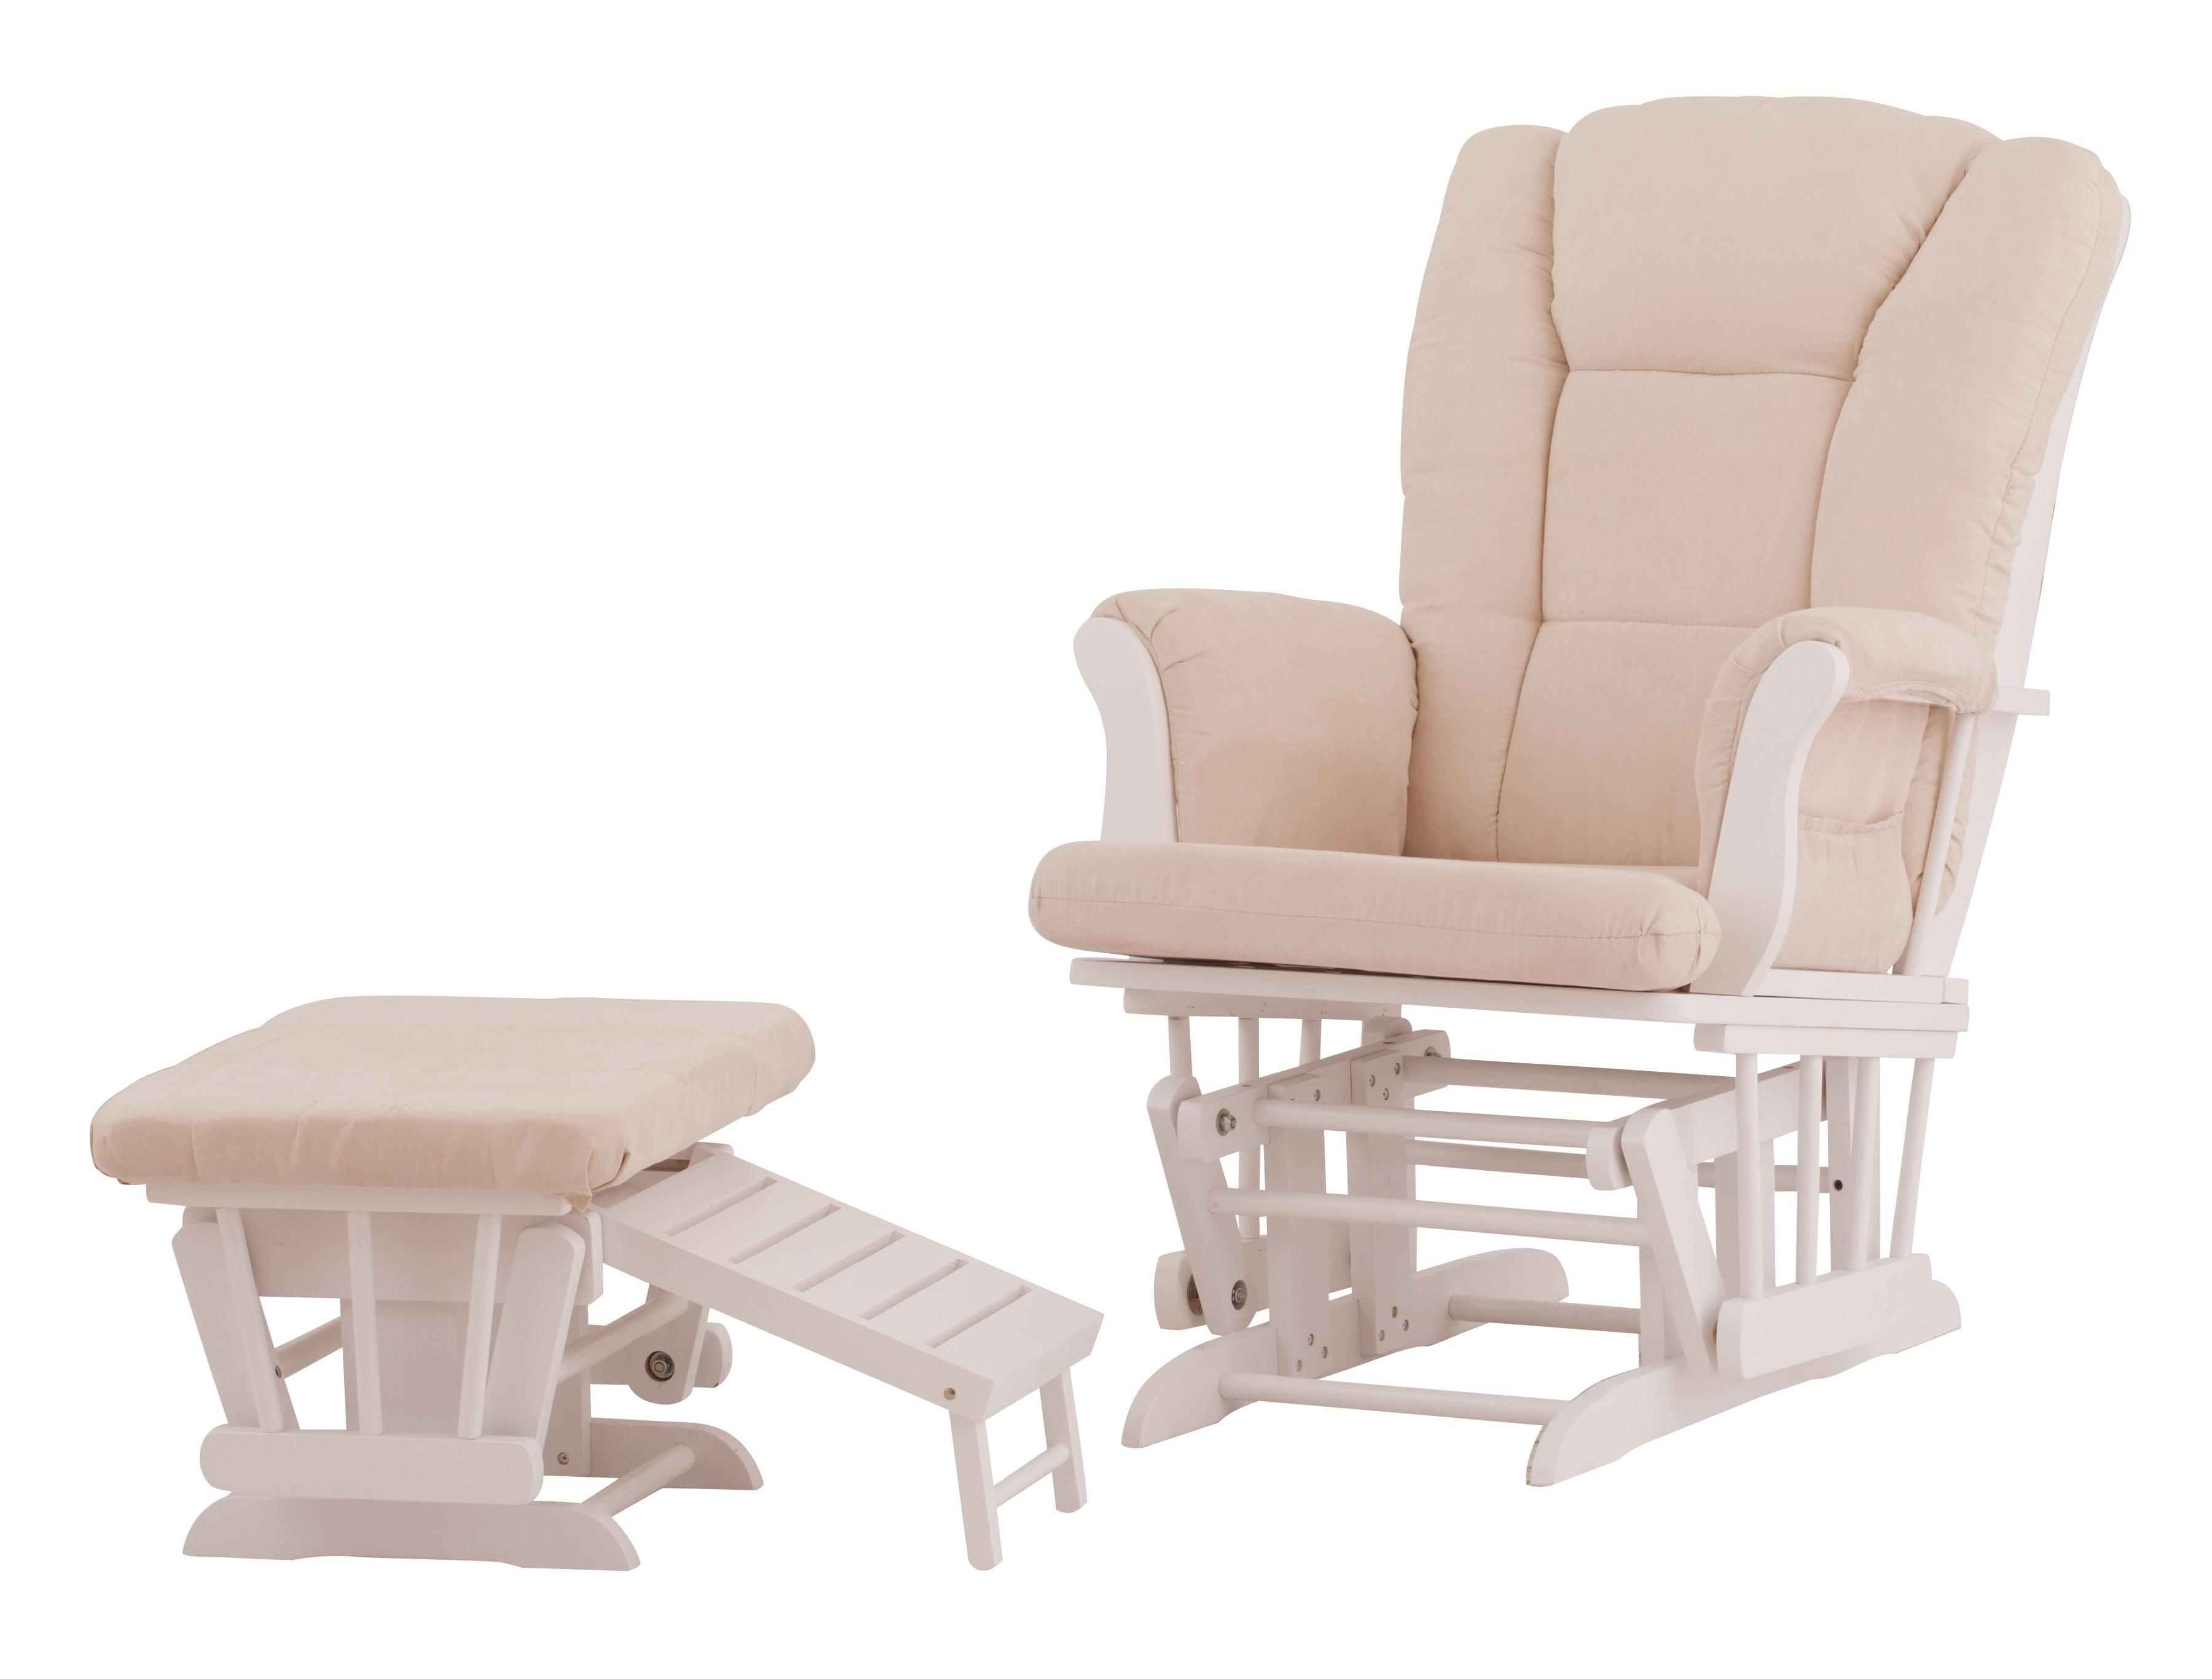 Preferred Amazon: Status Veneto Glider And Nursing Ottoman, White/beige: Baby Regarding Amazon Rocking Chairs (View 11 of 15)